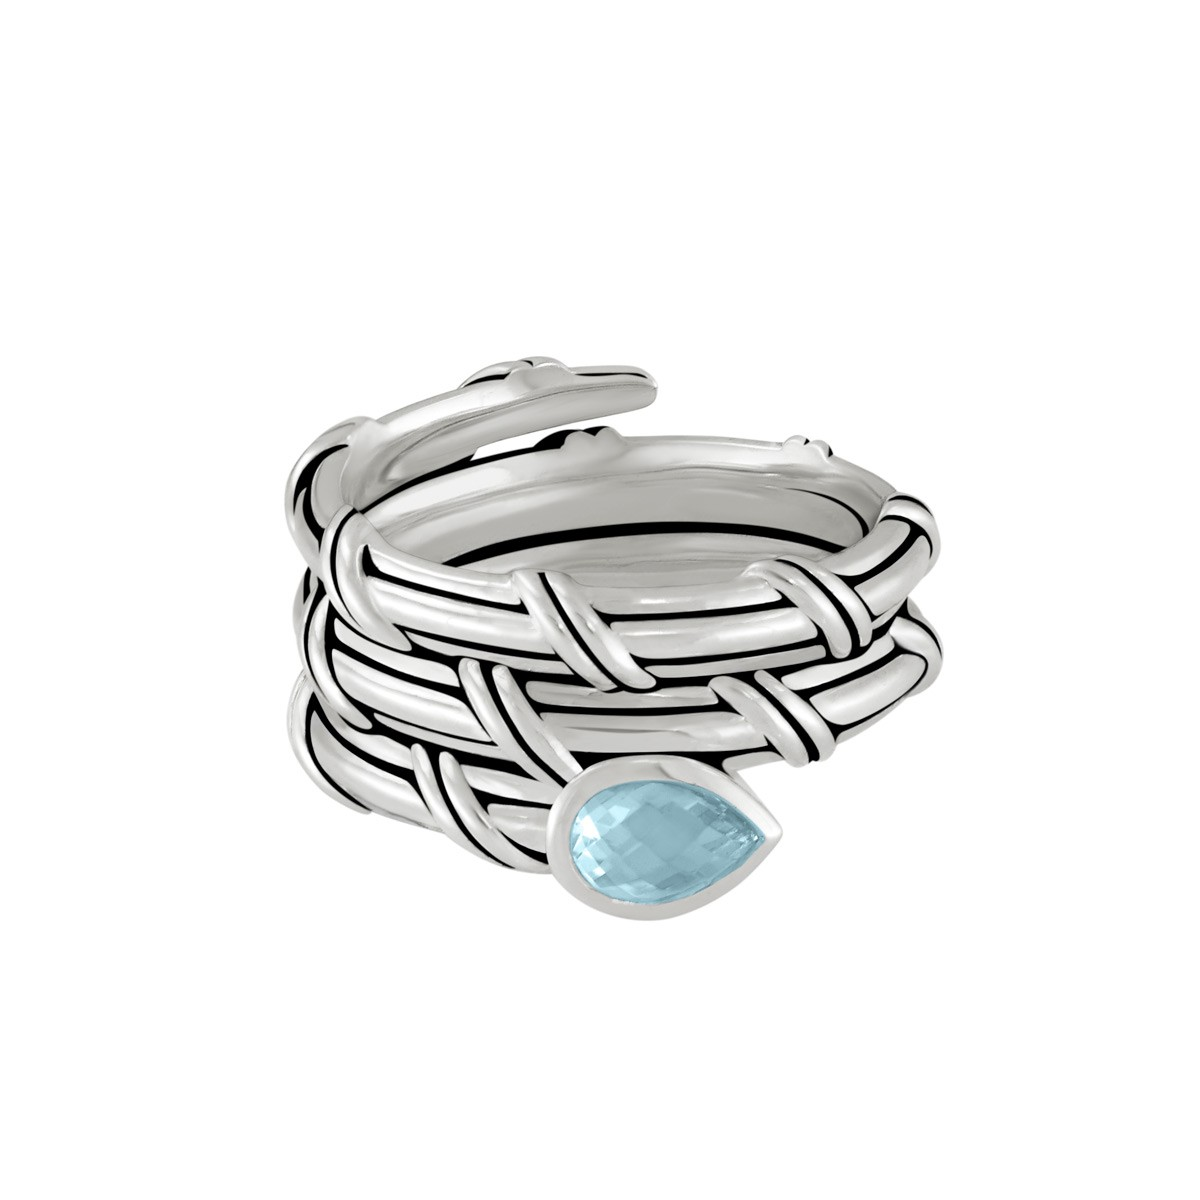 Signature Classic Wrap Ring with blue topaz in sterling silver